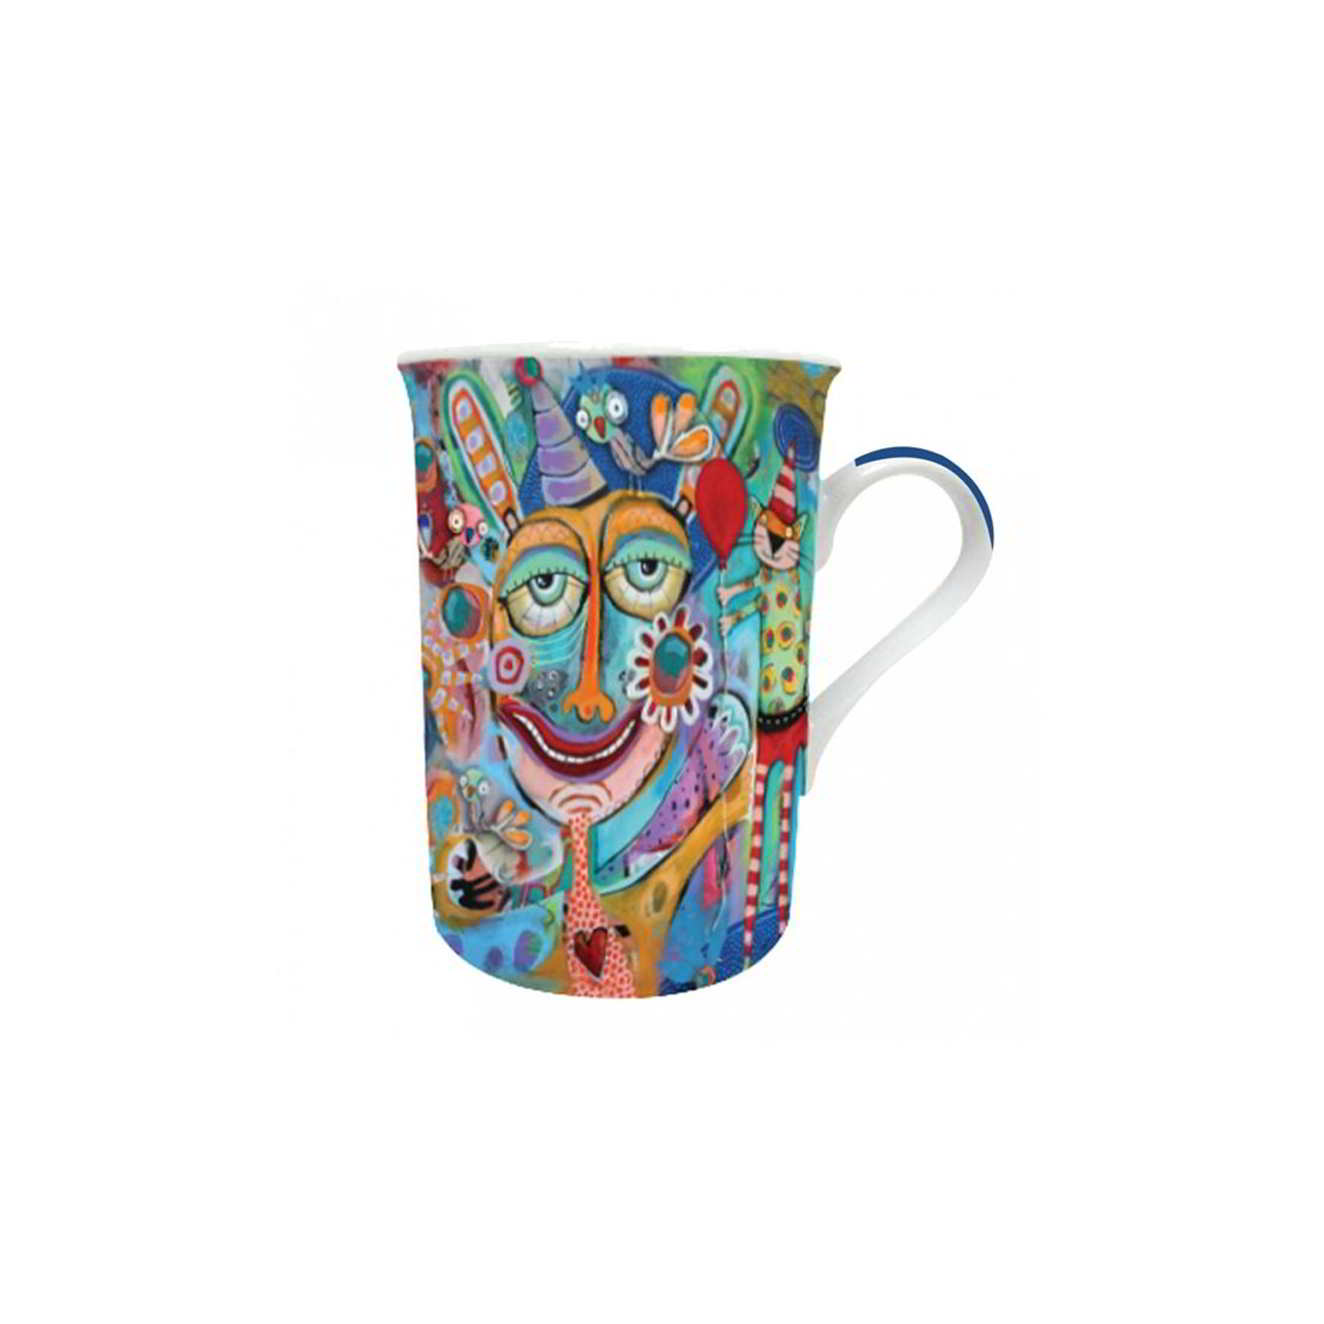 Deco Mug Mug Déco Allen Designs It 39s Your Party